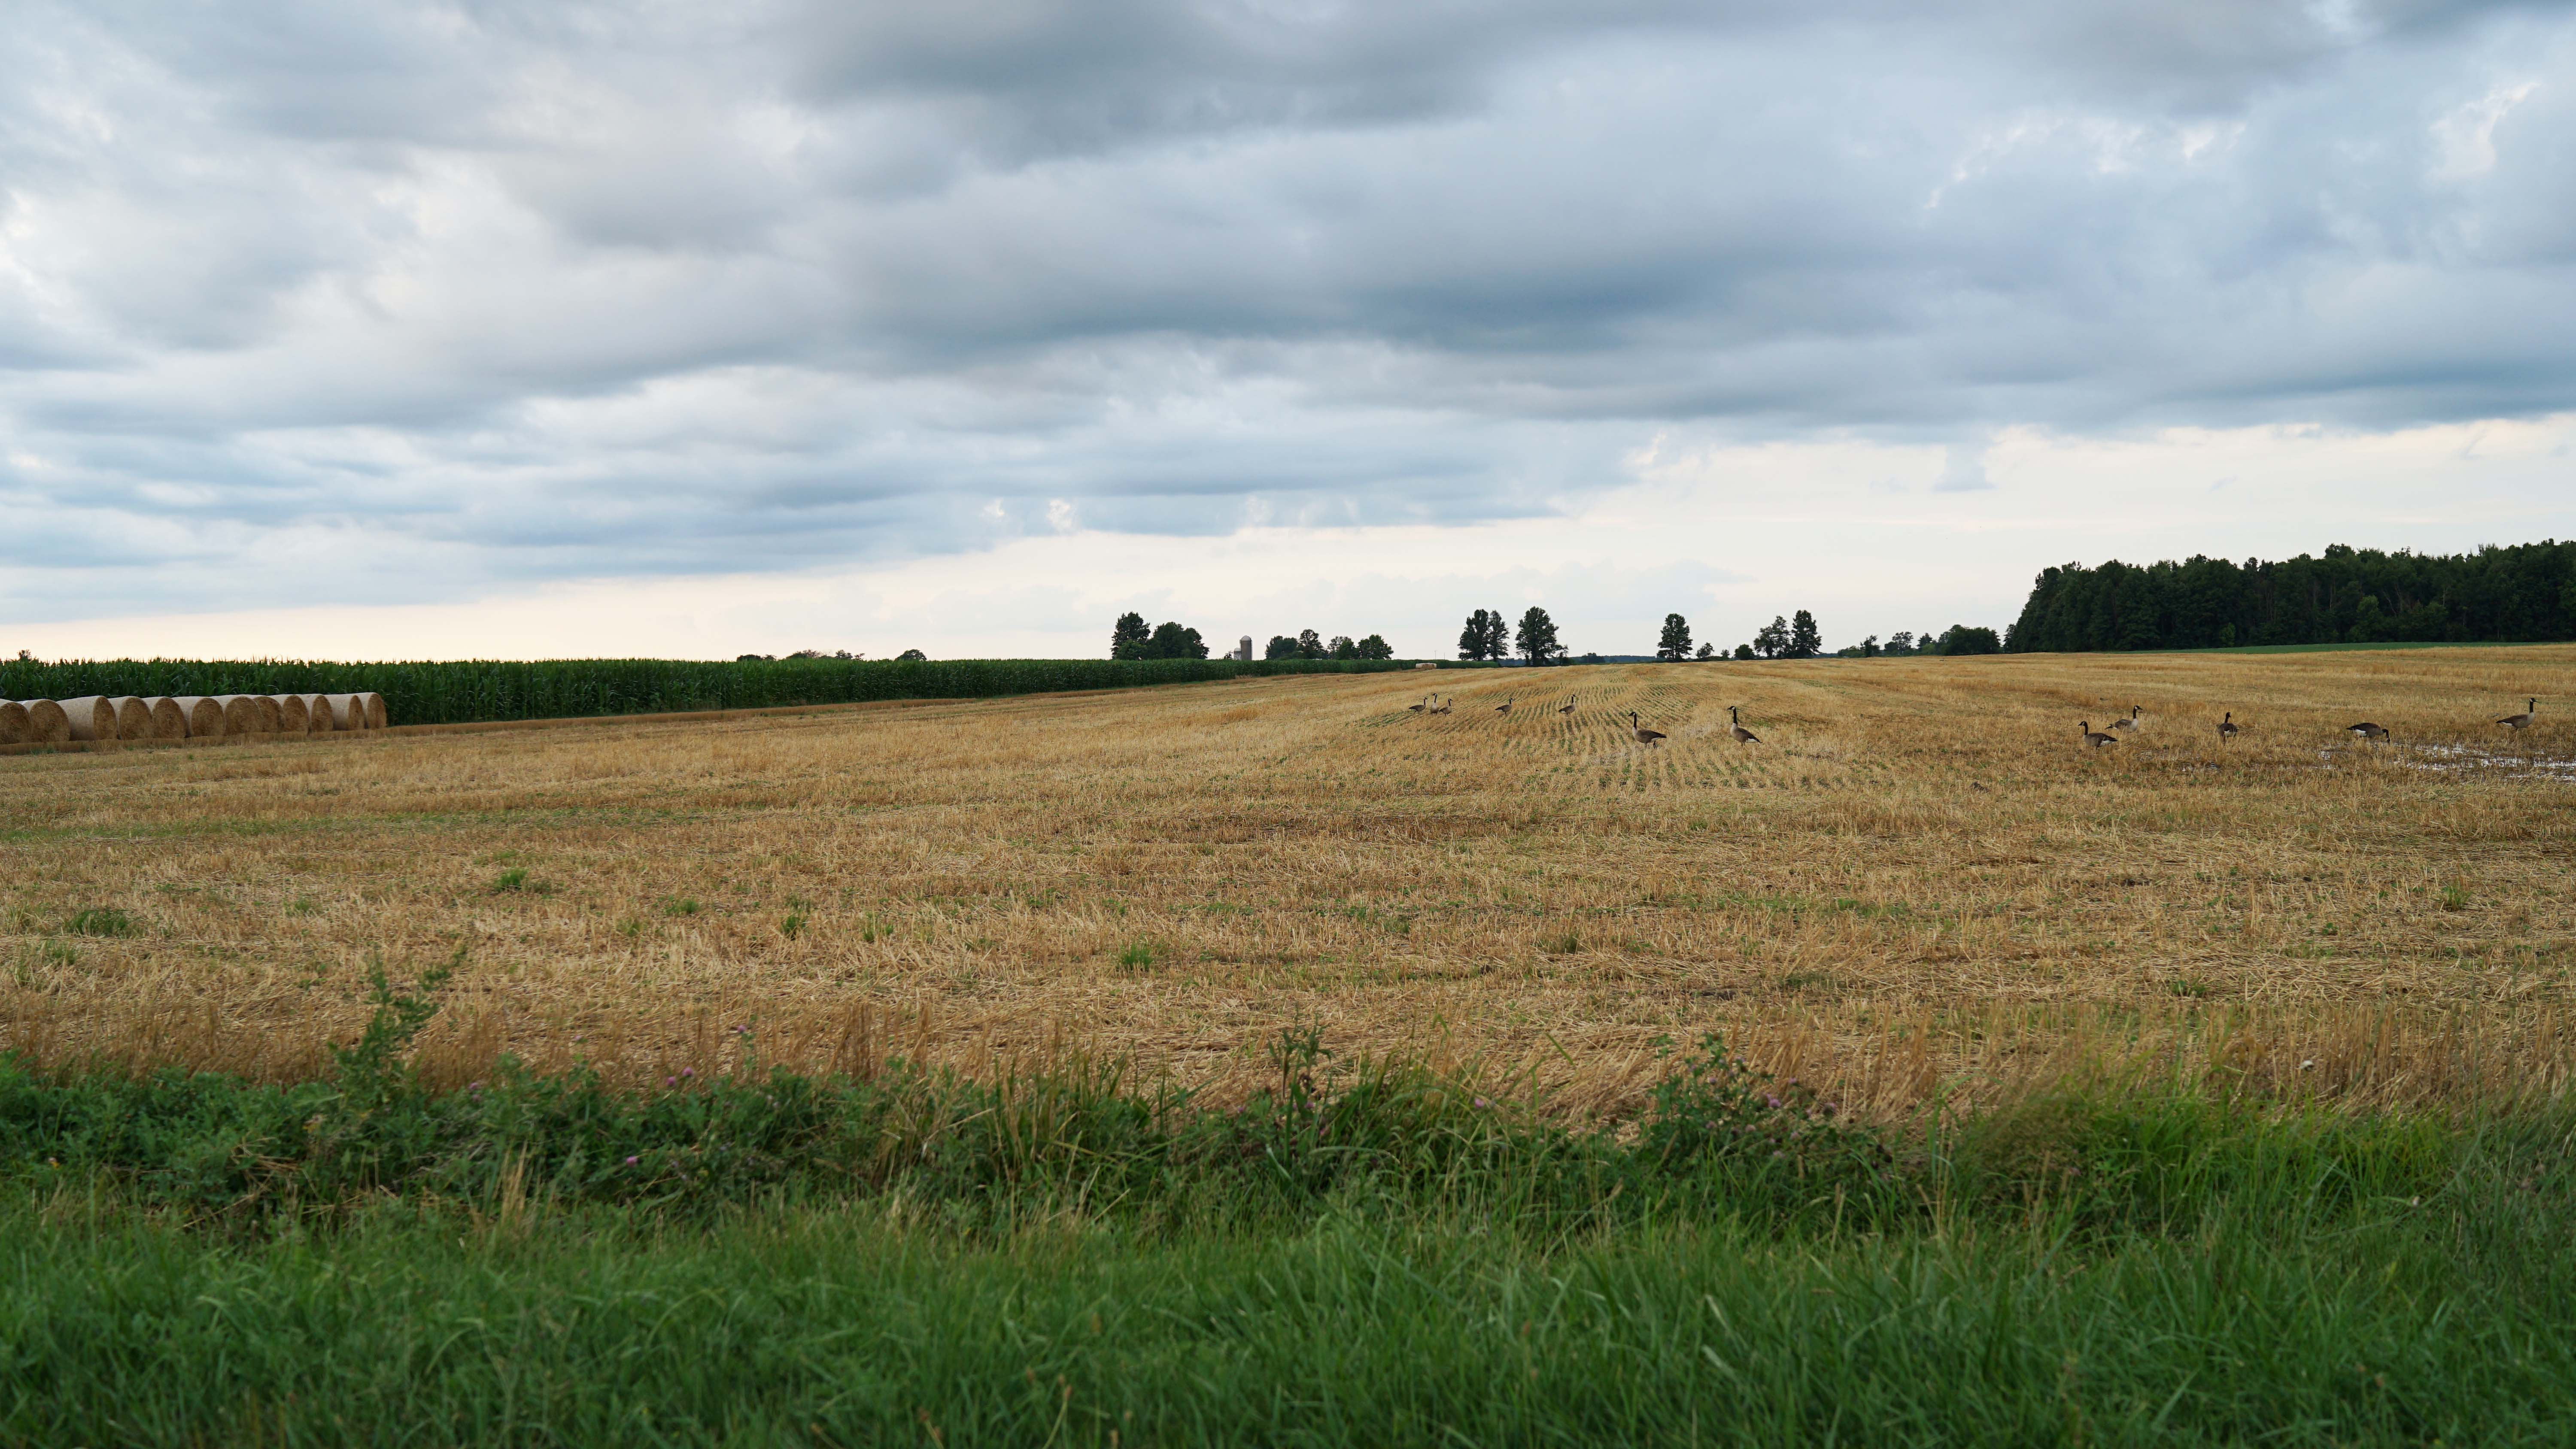 Geese in field on Troutman Rd 7-18-2016